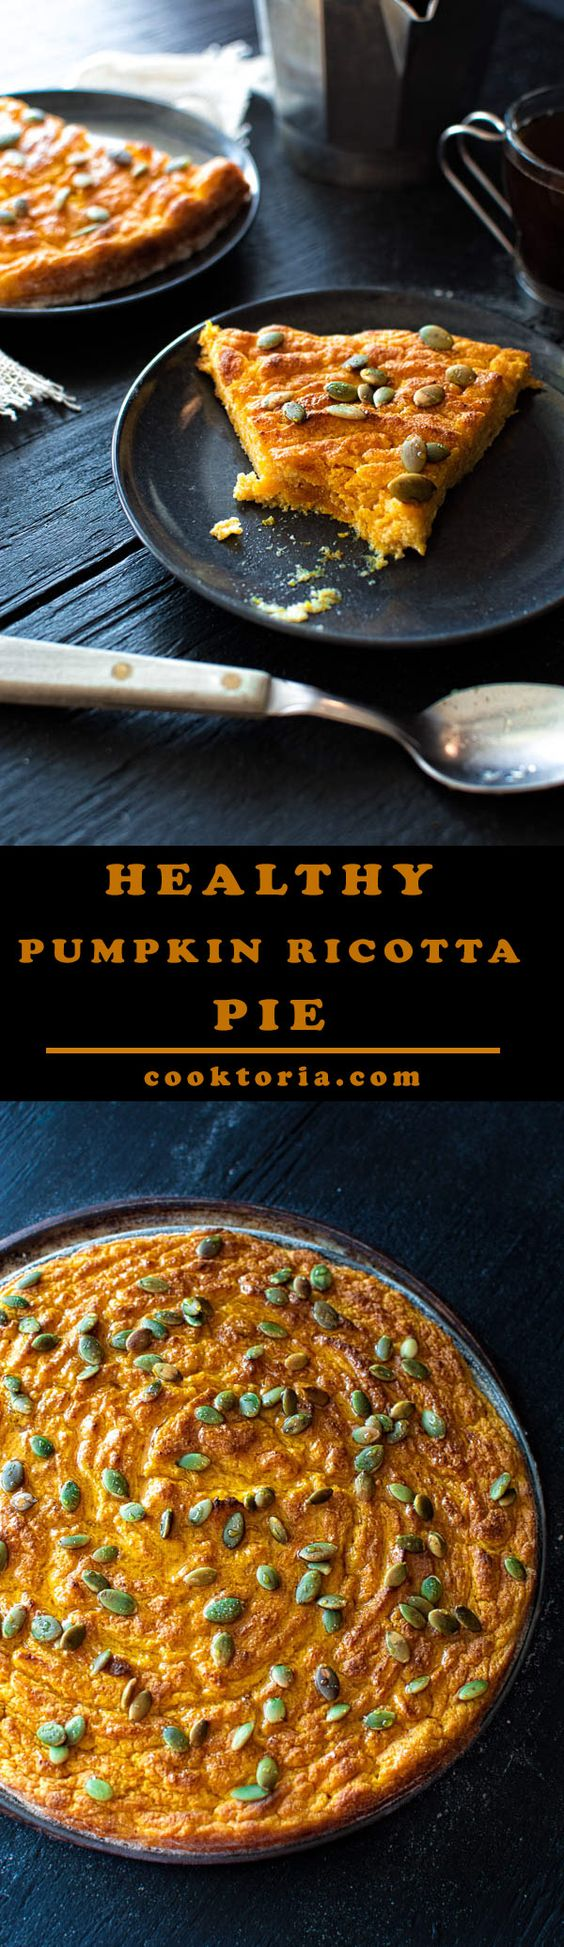 Simple and healthy pumpkin ricotta pie recipe. Great with a cup of coffee! ❤ COOKTORIA.COM